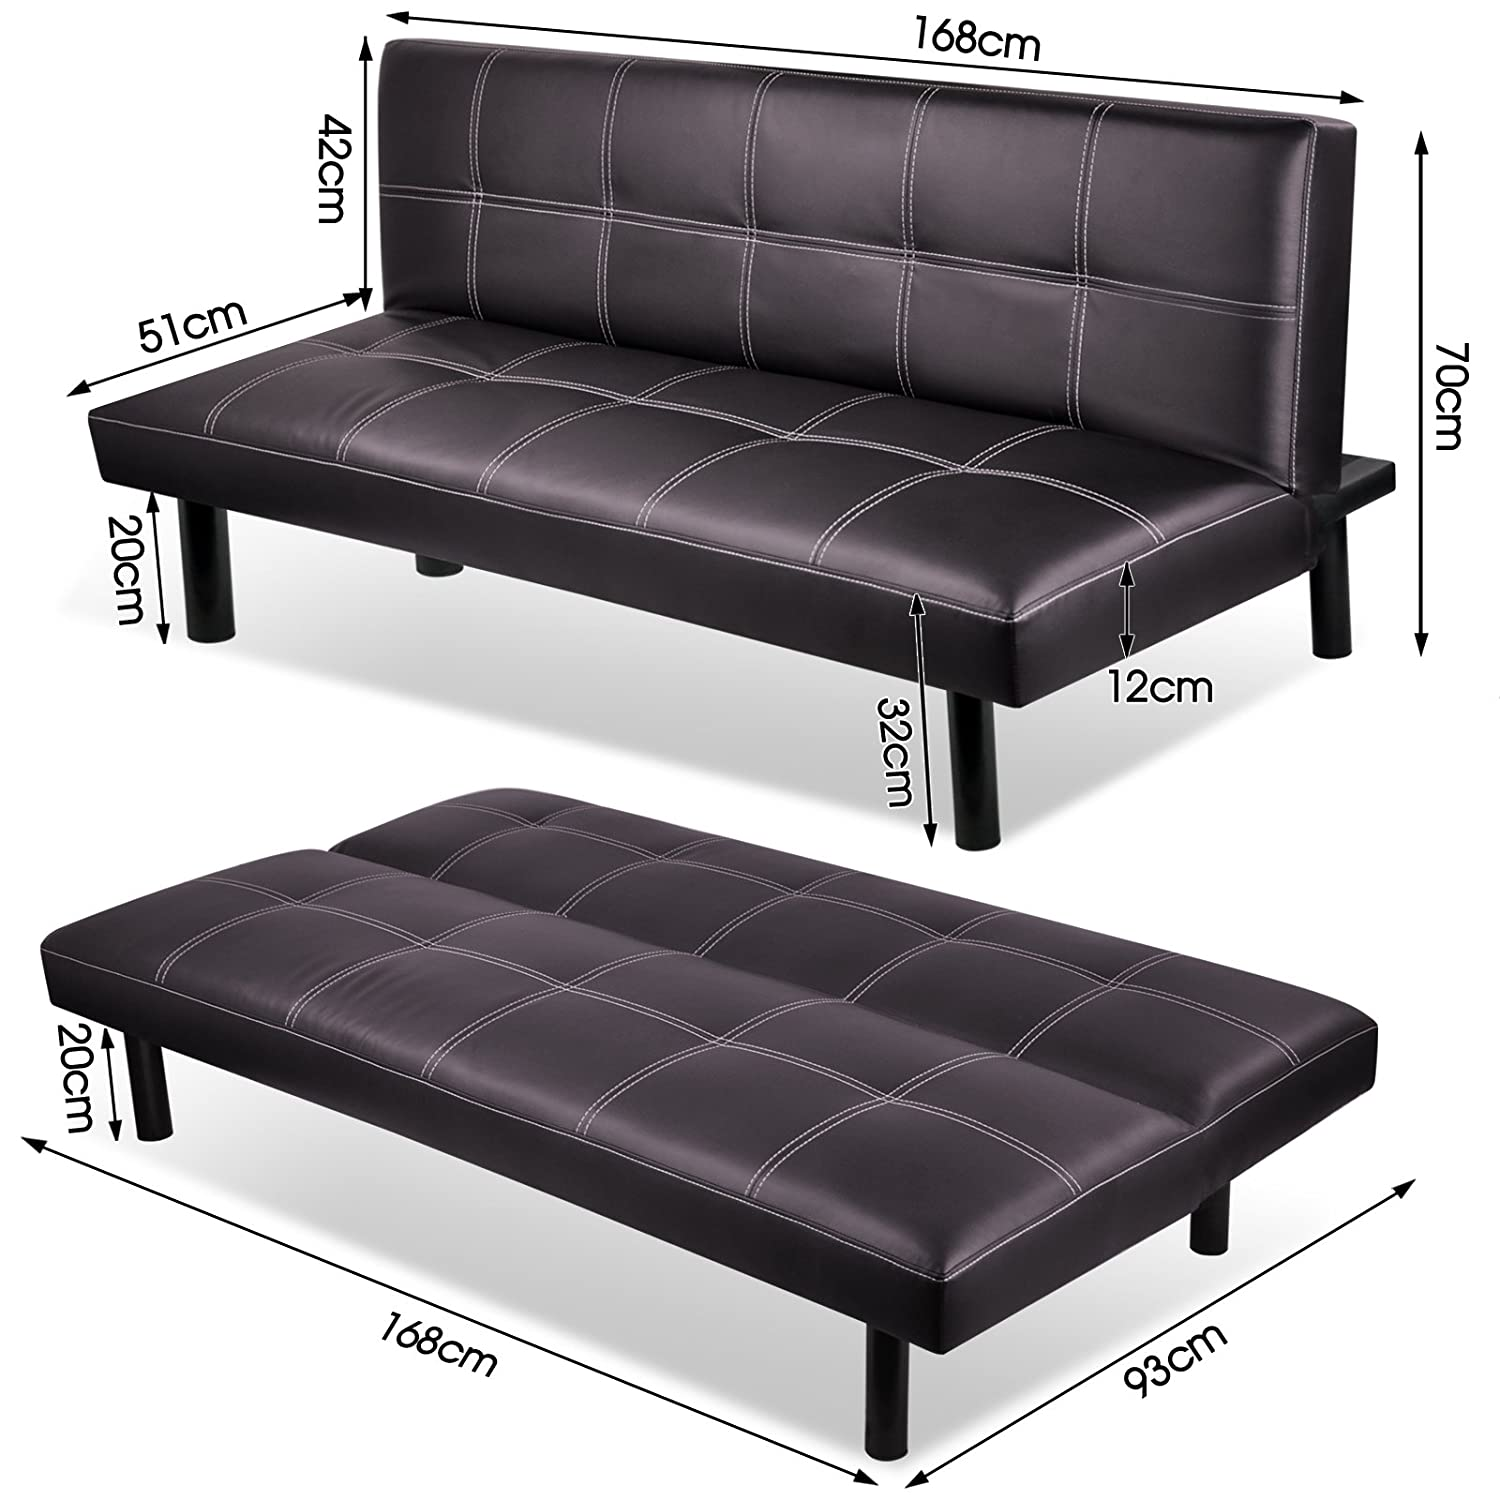 3 Seater Modern Pu Leather Sofa Bed Fold Down Living Room Furniture Office Brown Ebay